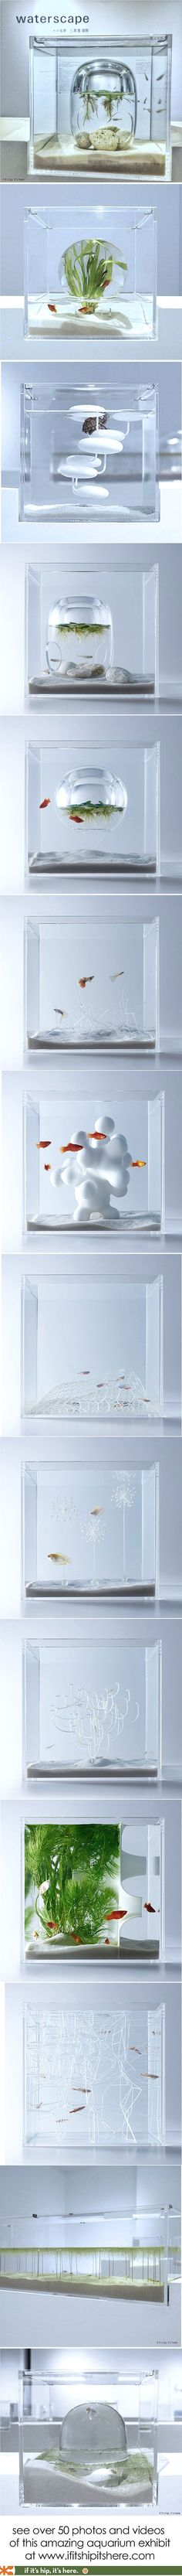 The Waterscape Aquarium Exhibit held at the Misawa Design Institute features a series of small architectural and artsy fish tanks designed by Hakura Misawa.